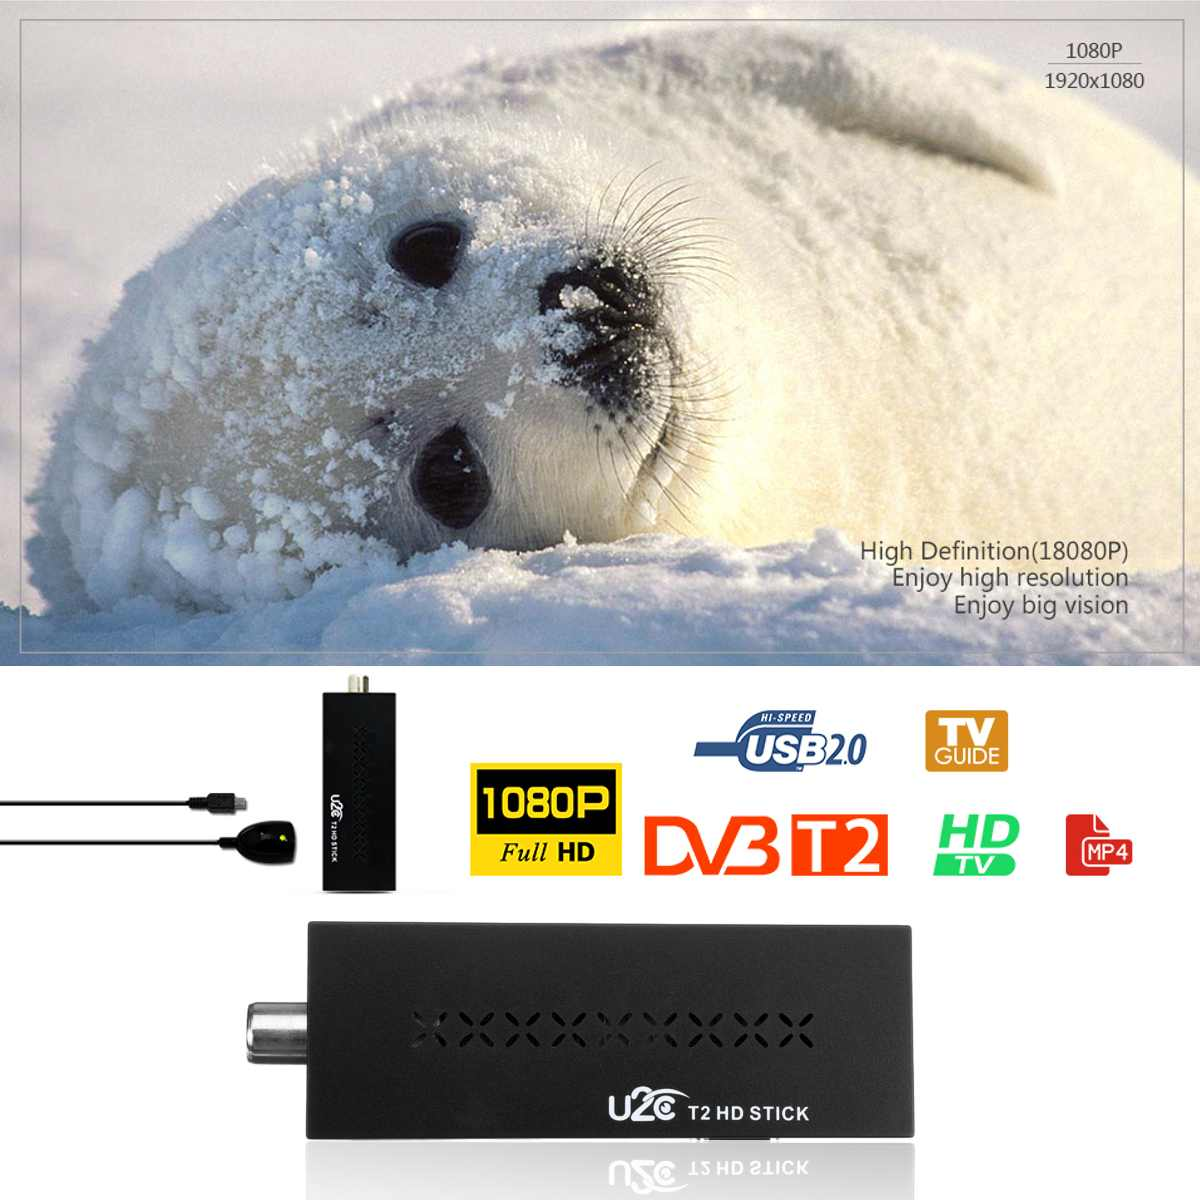 USB2.0 DVB T2 Wifi TV Tuner DVB-T2 Receiver Full-HD 1080P Digital Smart TV Box Support MPEG H.264 I PTV Built-in Russian Manual